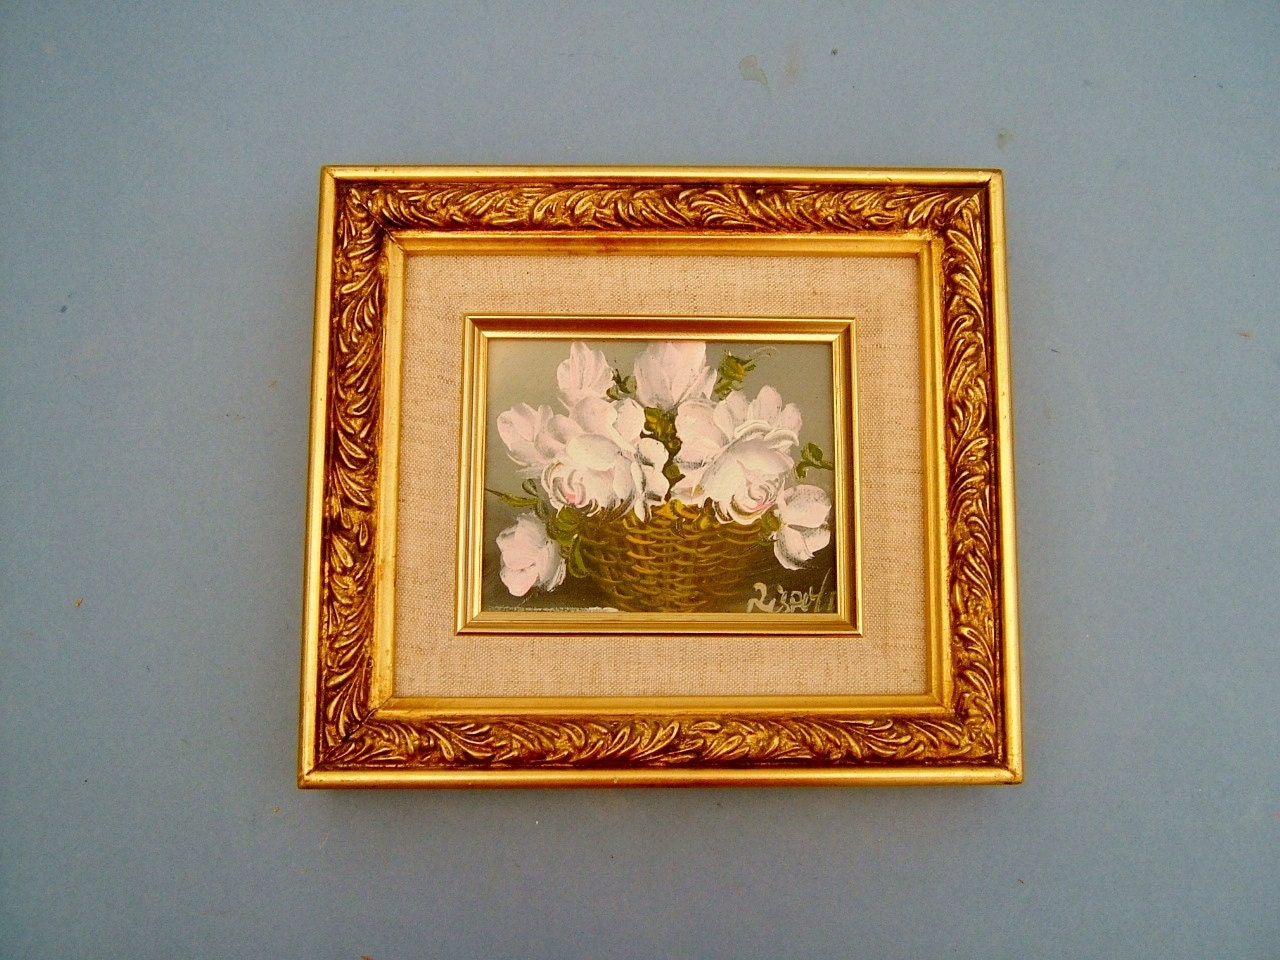 1950s Painting of a Vase Basket of White Flowers Original Art Still Life